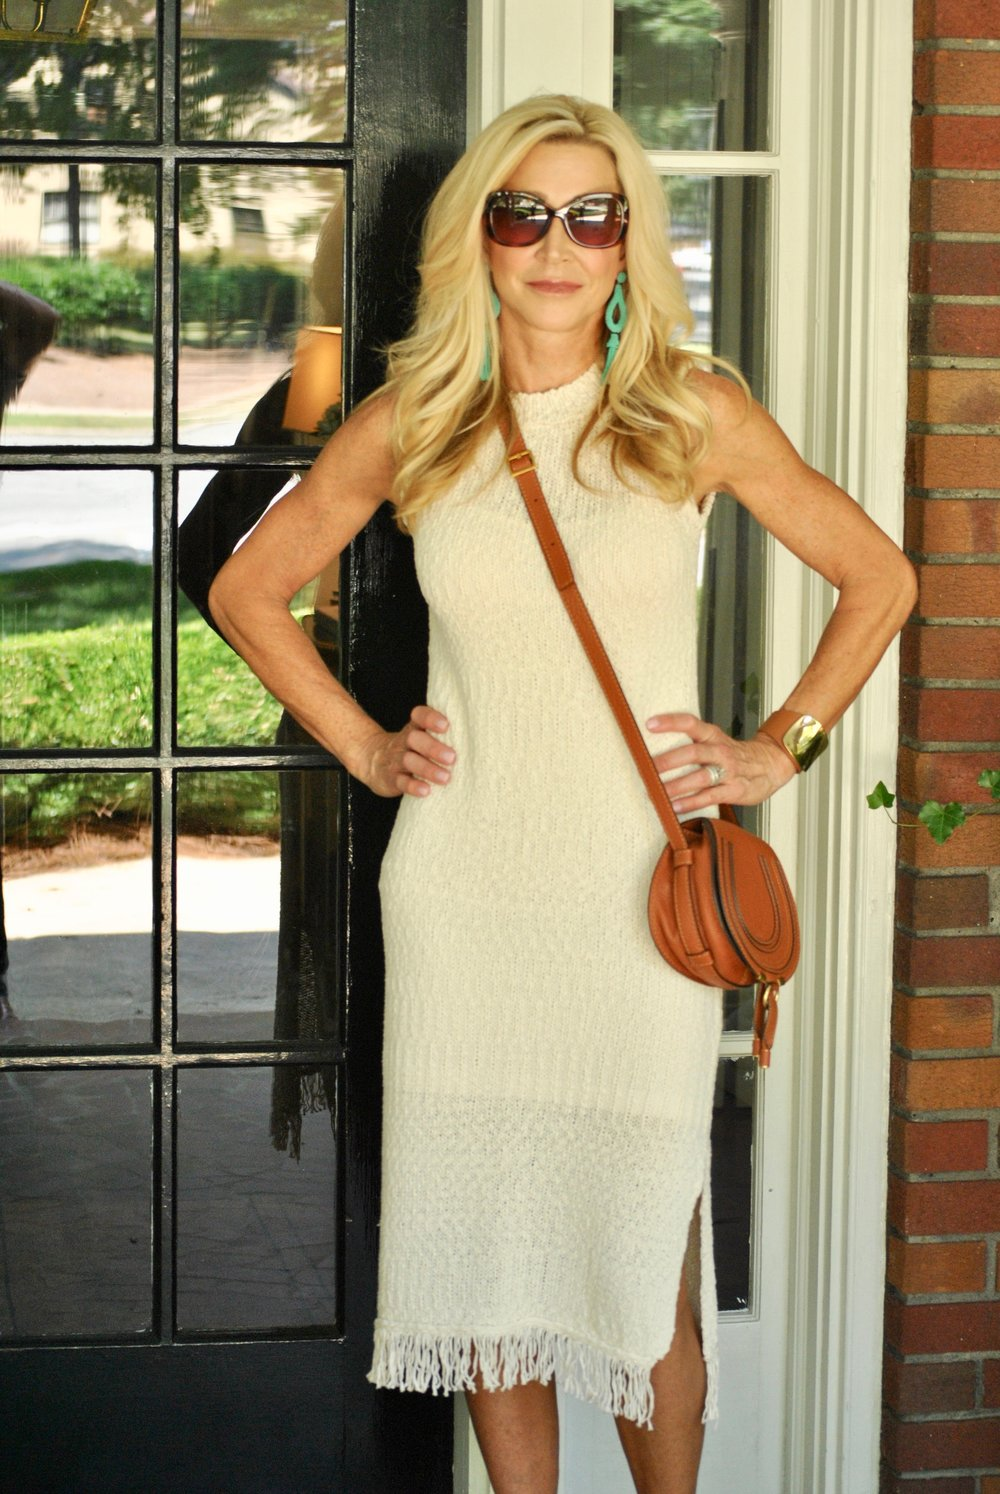 Anthropologie dress, Chloe bag and Chloe espadrilles